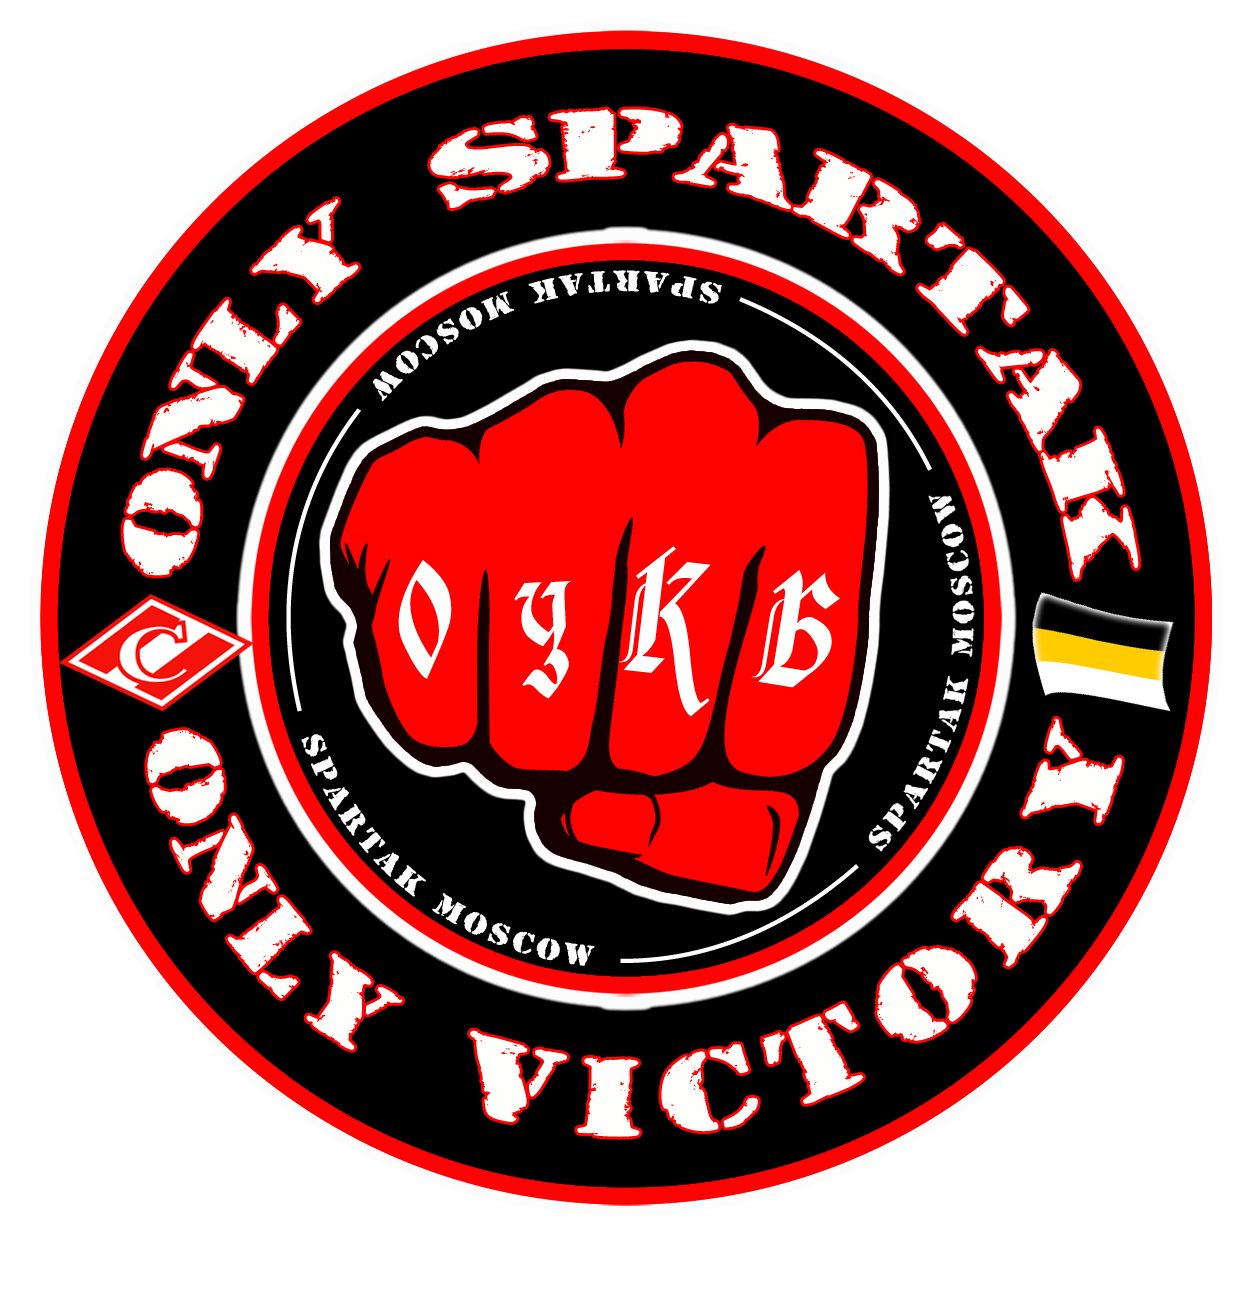 Only Spartak Only Victory